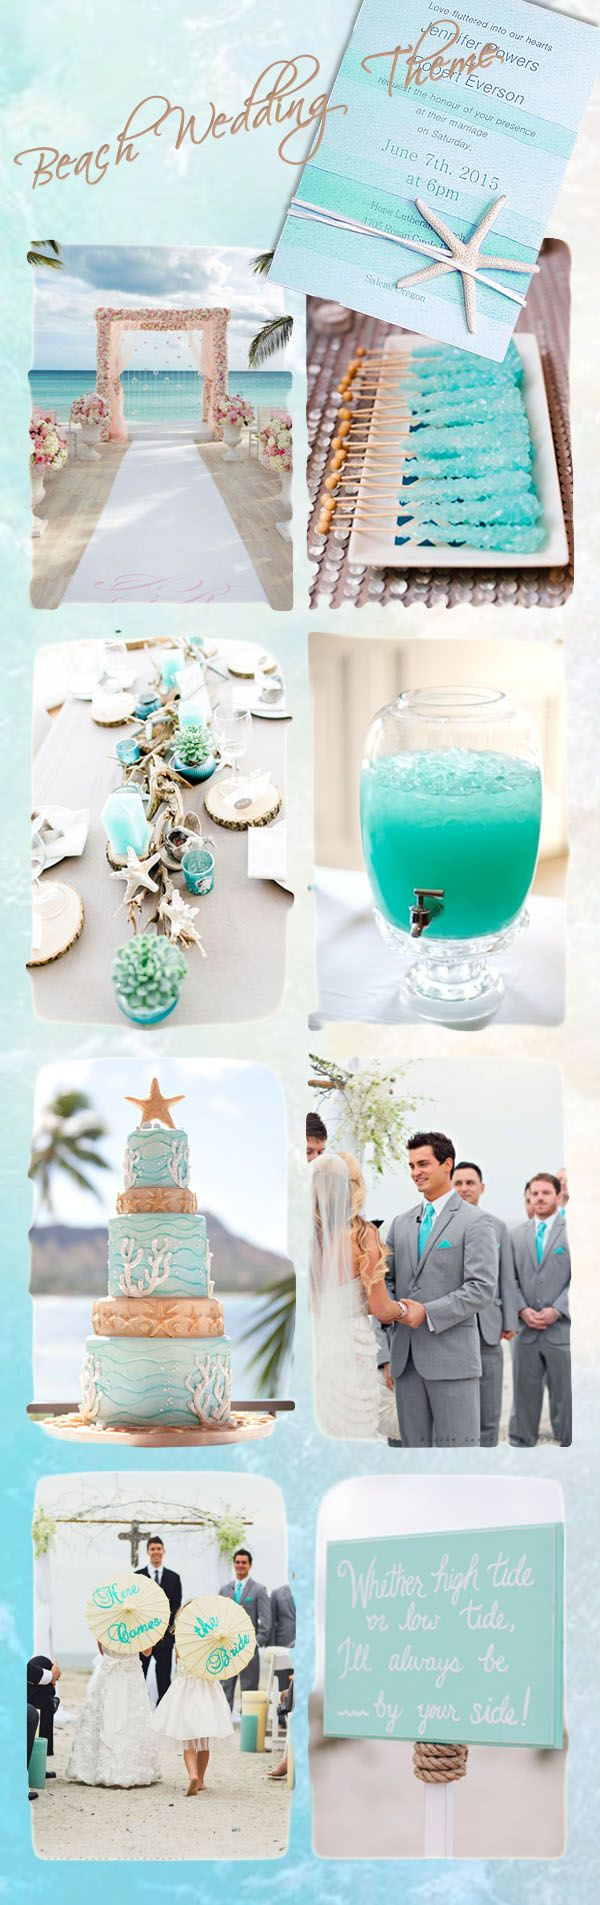 Wedding colors for a beach wedding  Top Ten Wedding Theme Ideas With Beautiful InvitationsPart One